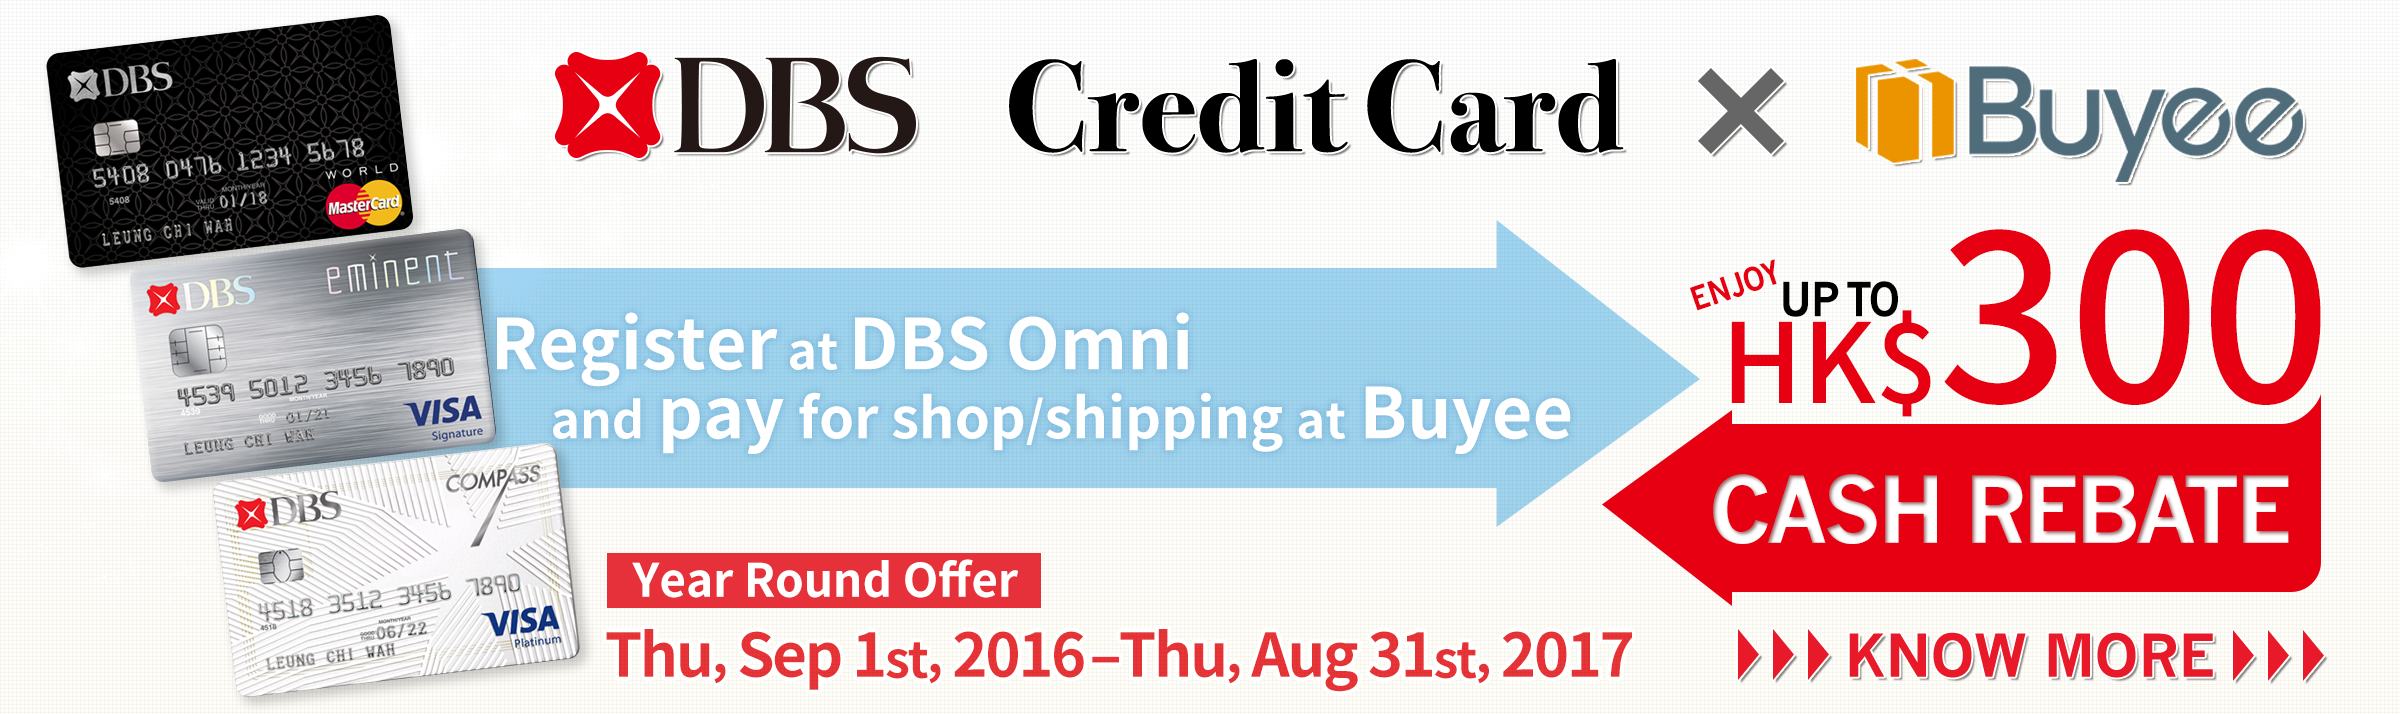 Register online with DBS Credit Card and pay for shipping or shop at tenso.com & Buyee to enjoy up to HK$300 cash rebate.